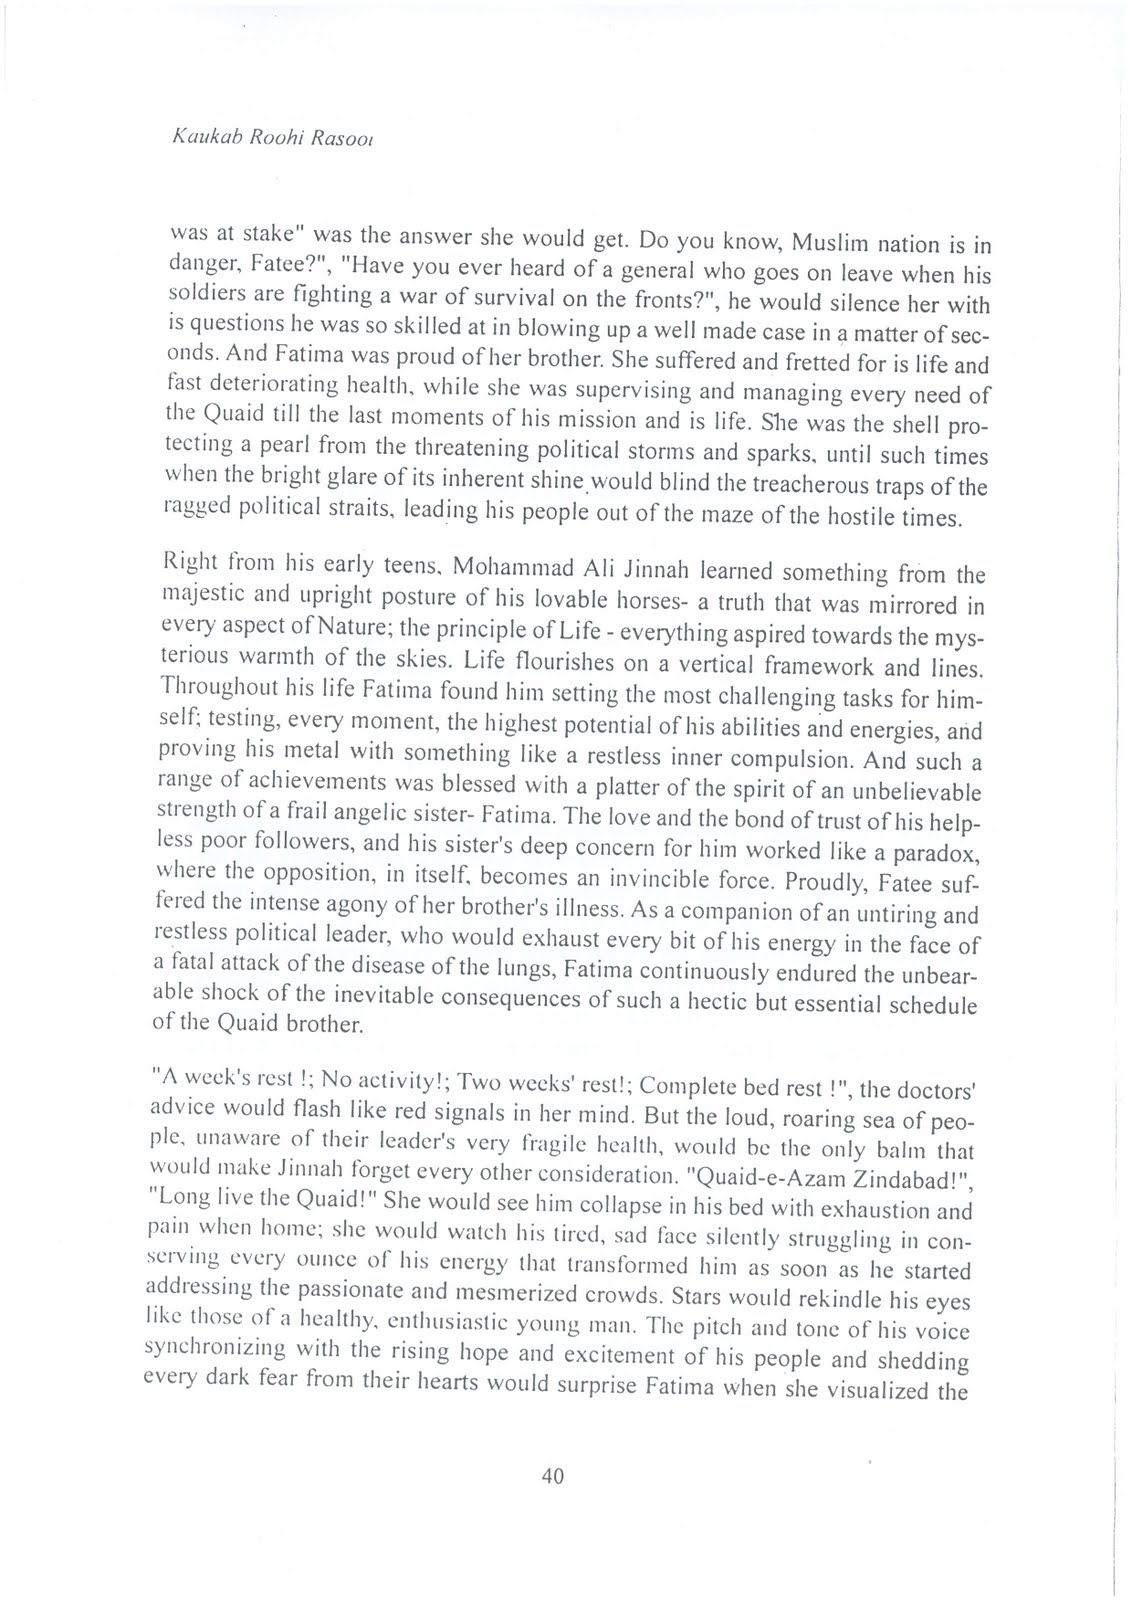 roohi writings for her brother quaid e azam mohammad ali jinnah the founder of this was published in the journal of gender and social issues in 2003